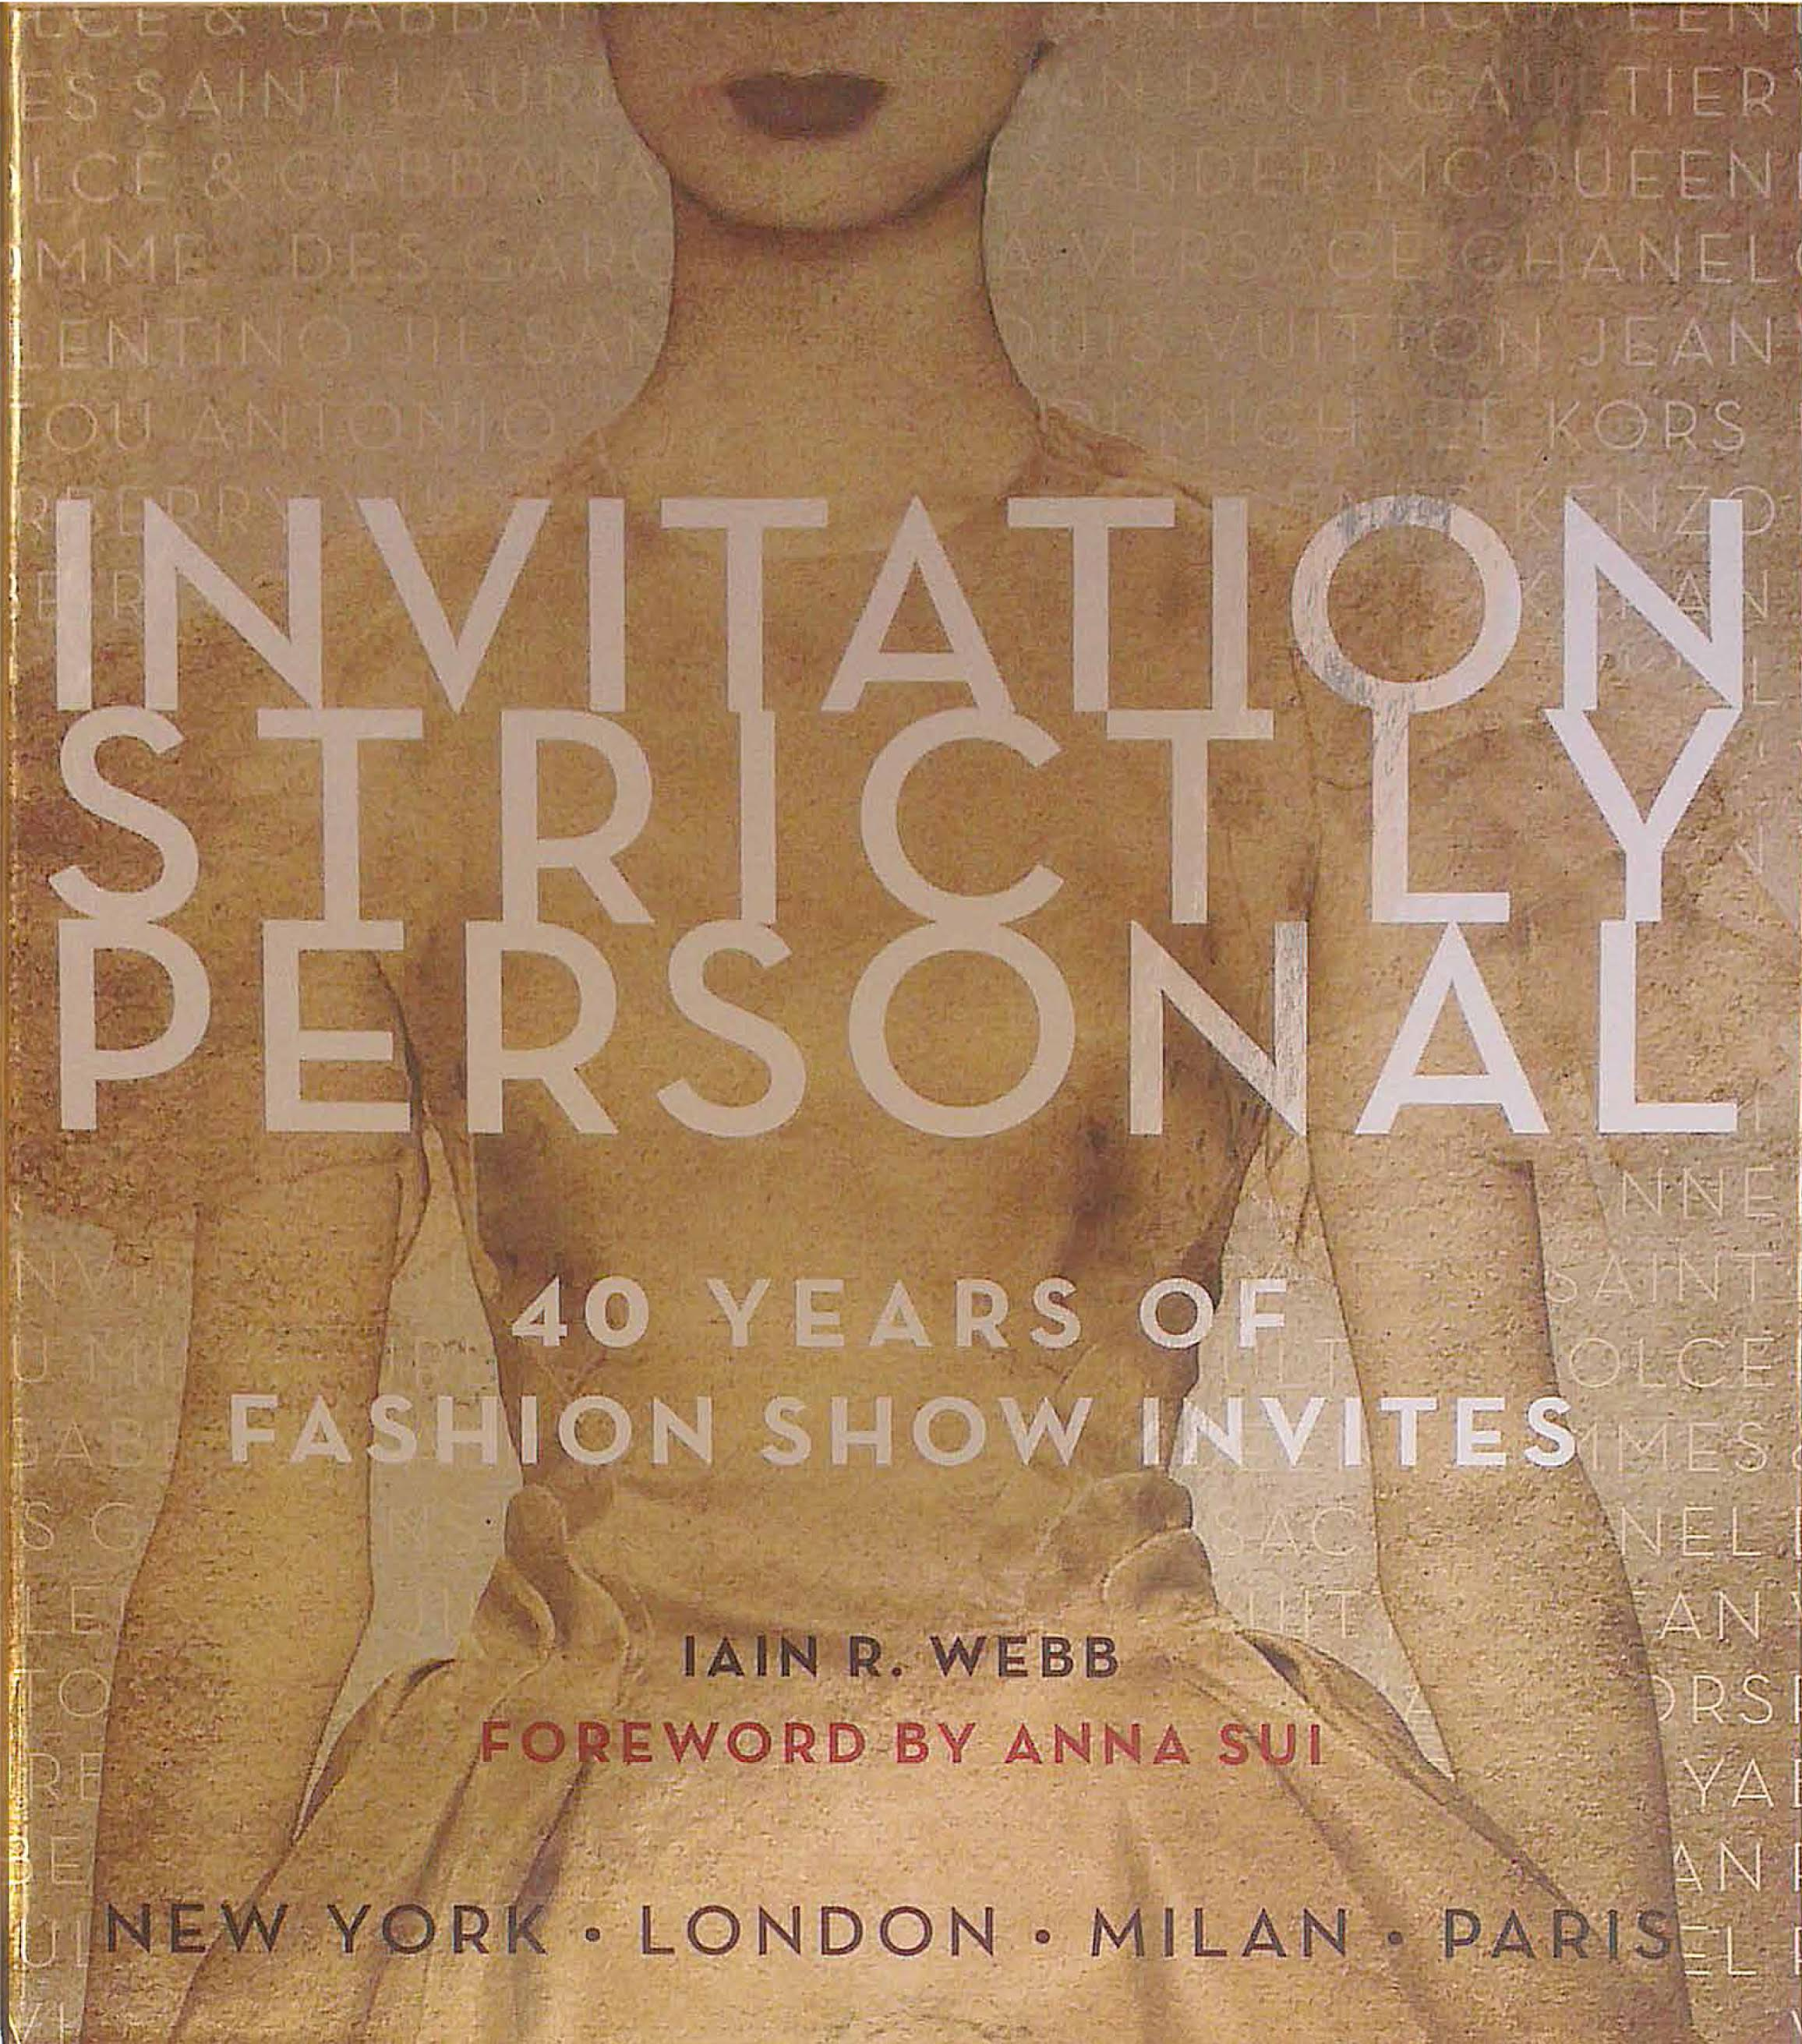 Cover of Invitation Strictly Personal.